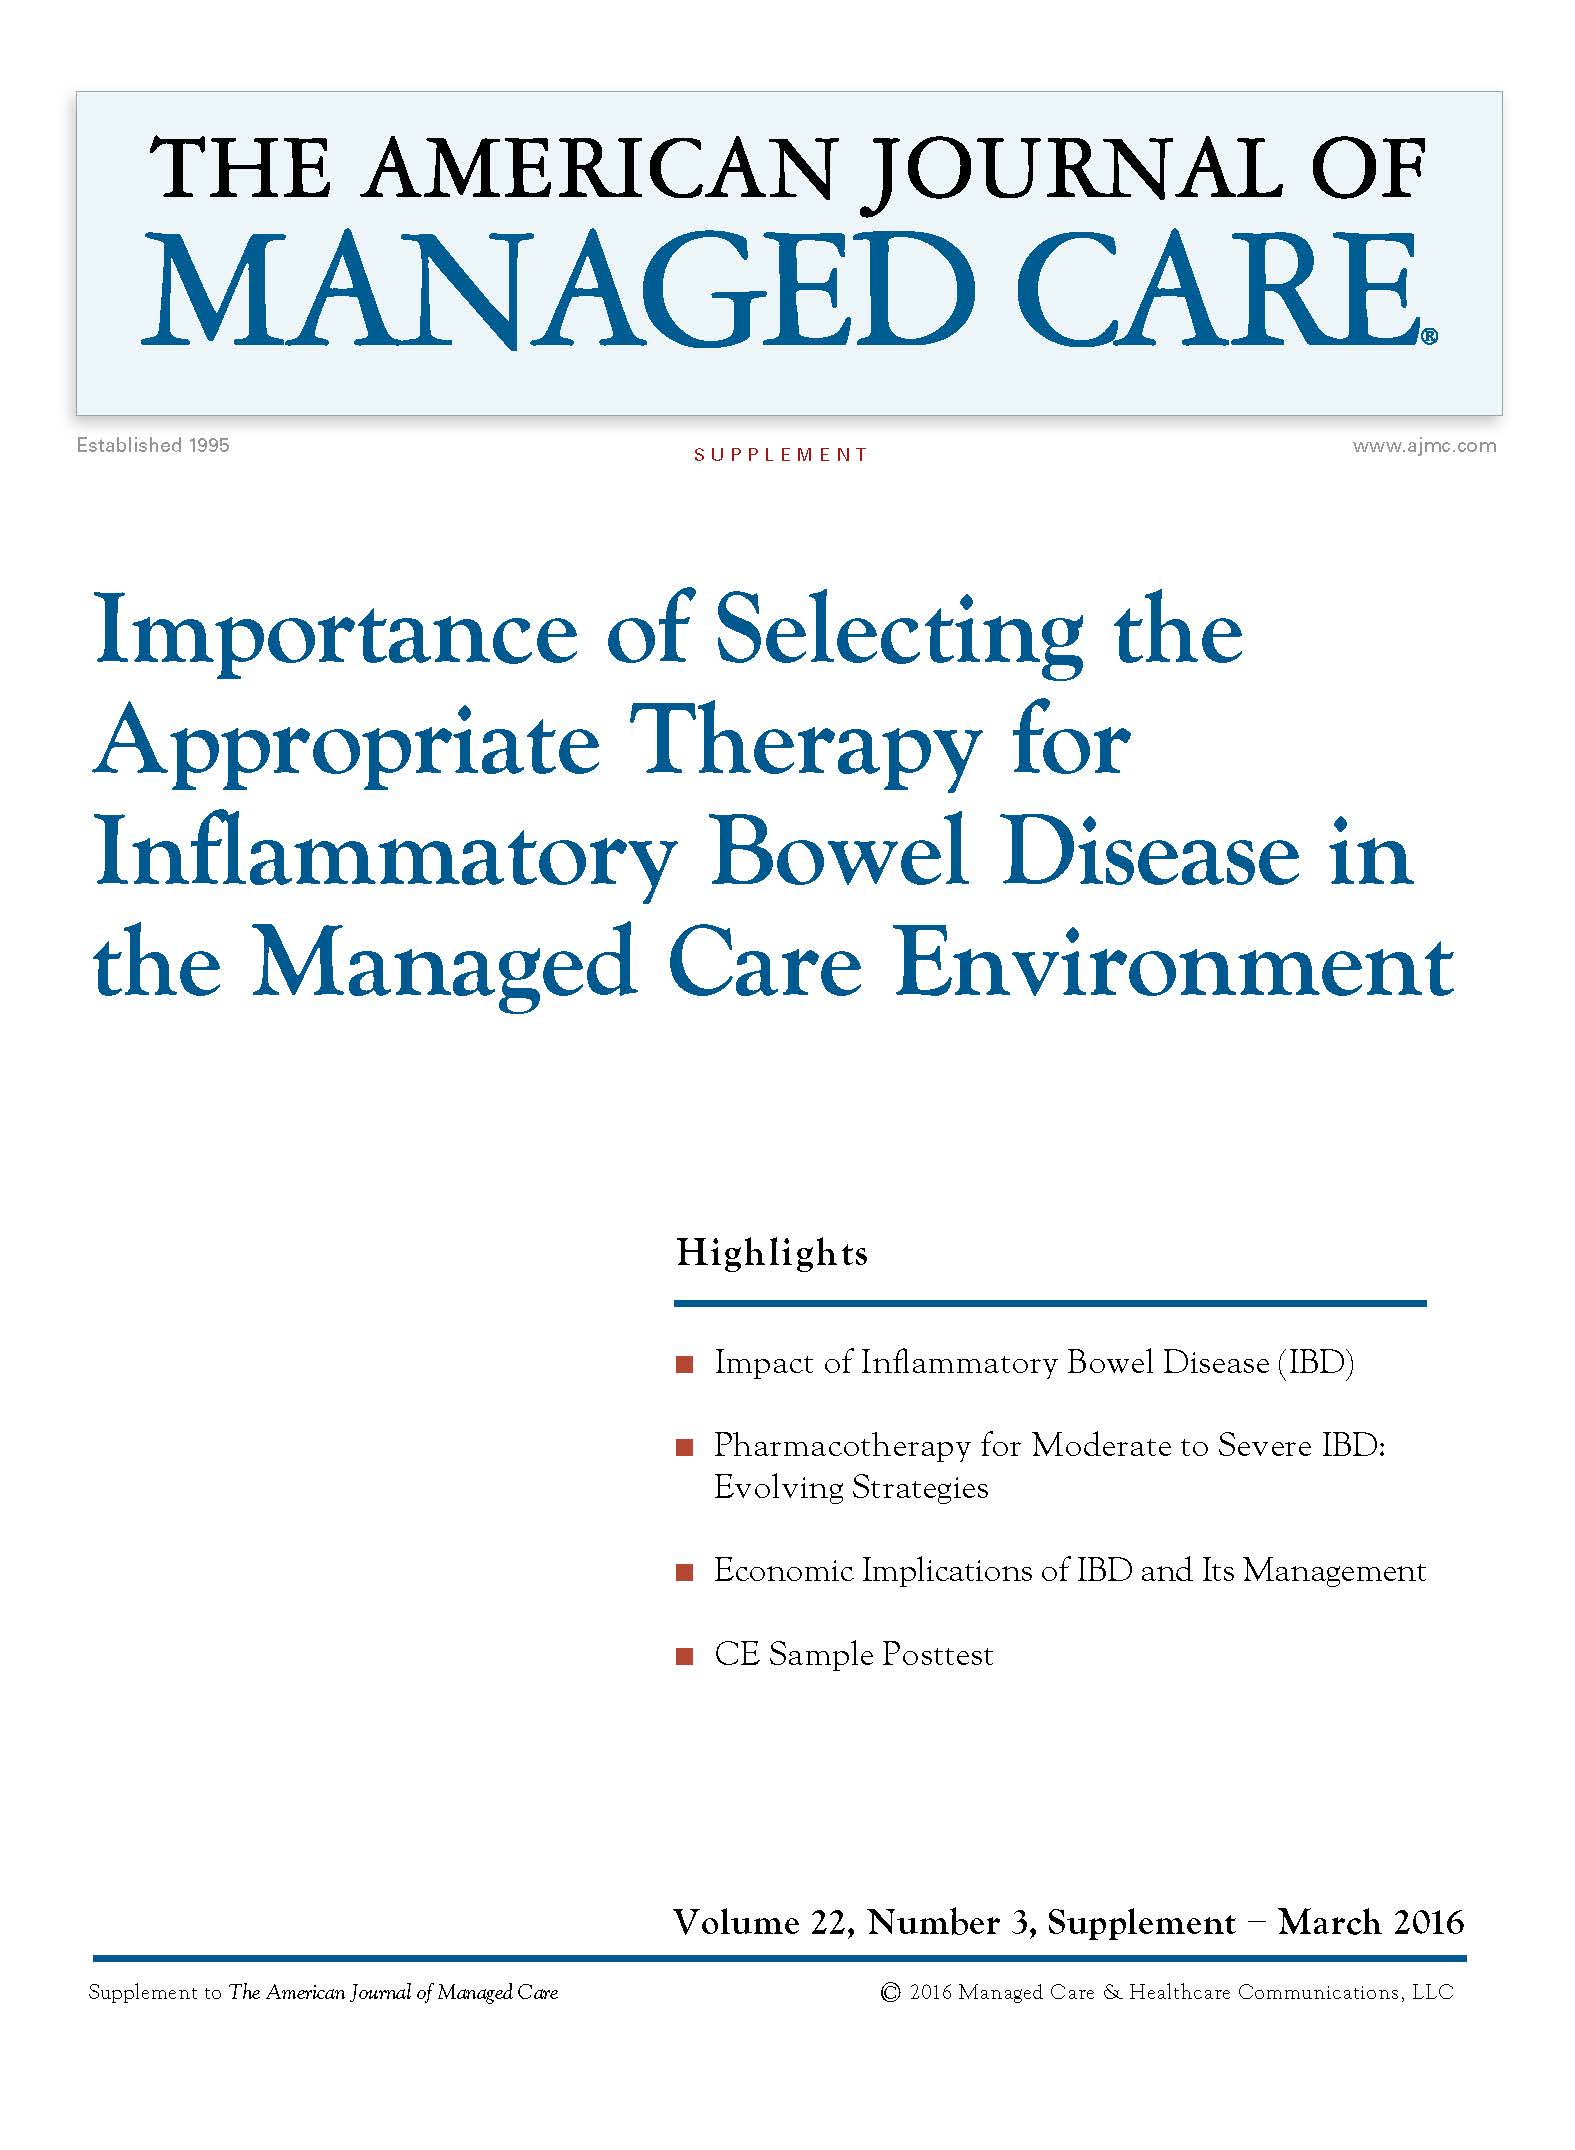 Importance of Selecting the Appropriate Therapy for Inflammatory Bowel Disease in the Managed Care Environment